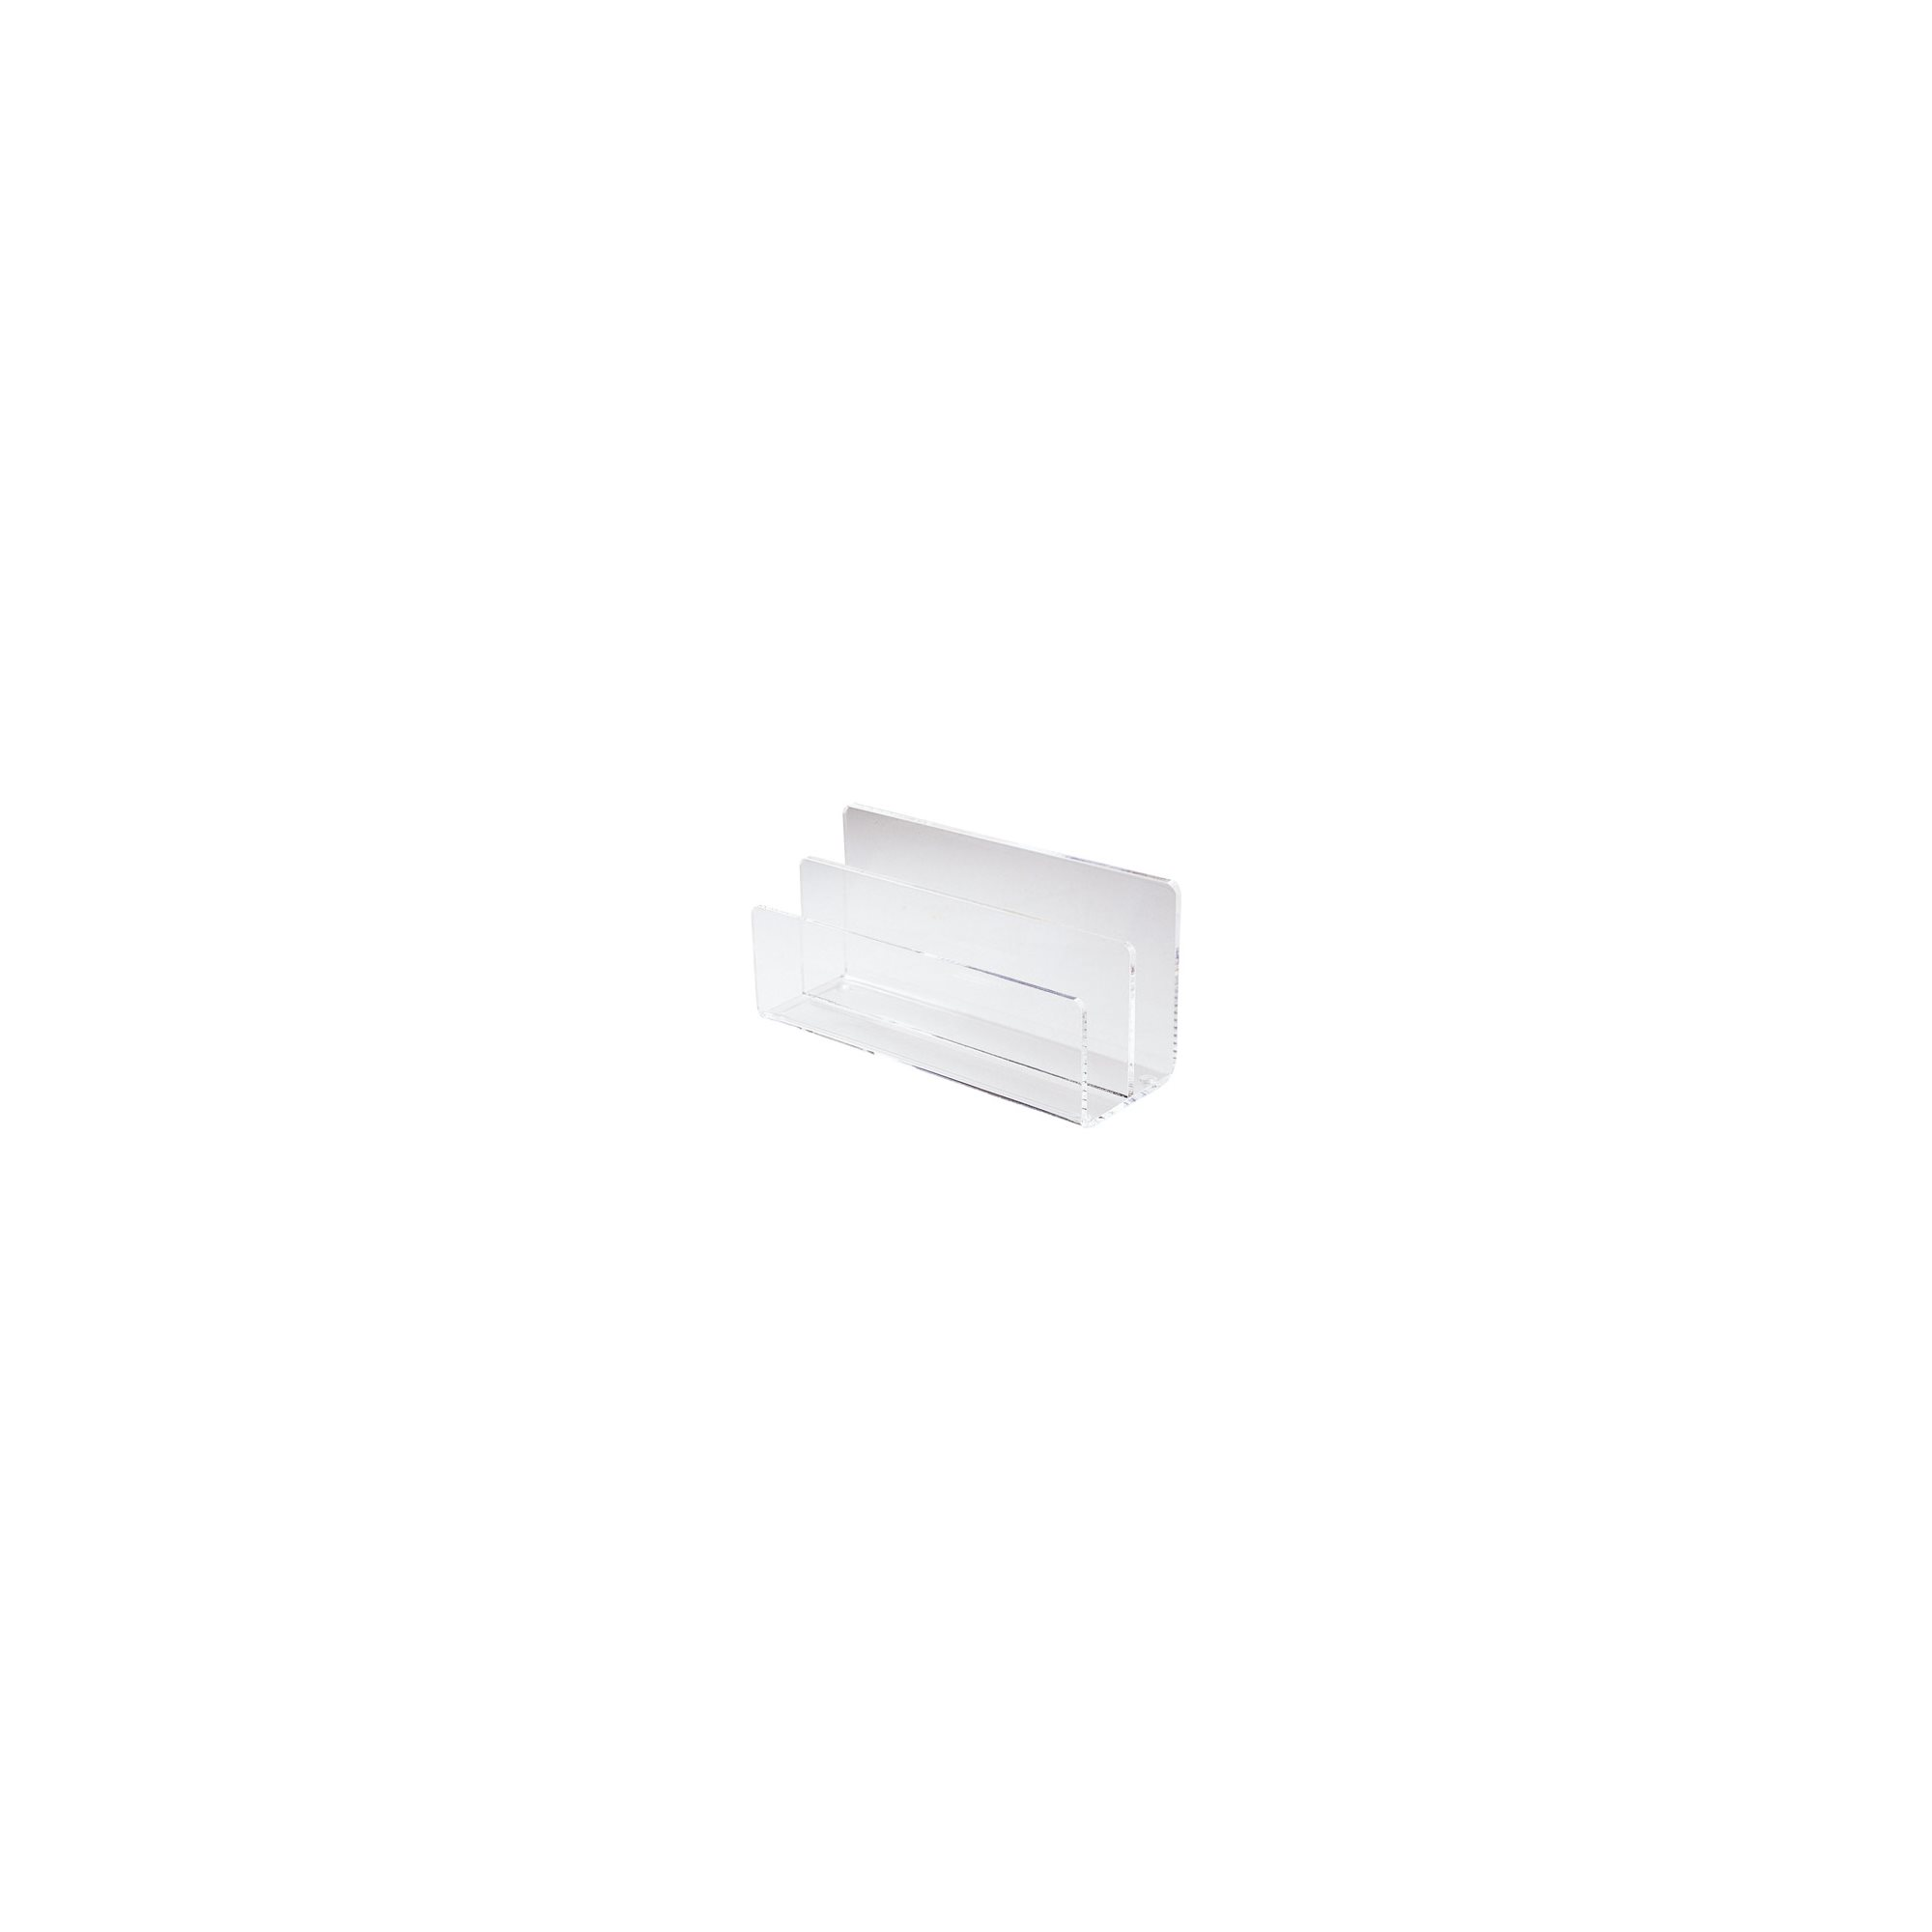 Classic mail holder 2 compartments colourless.